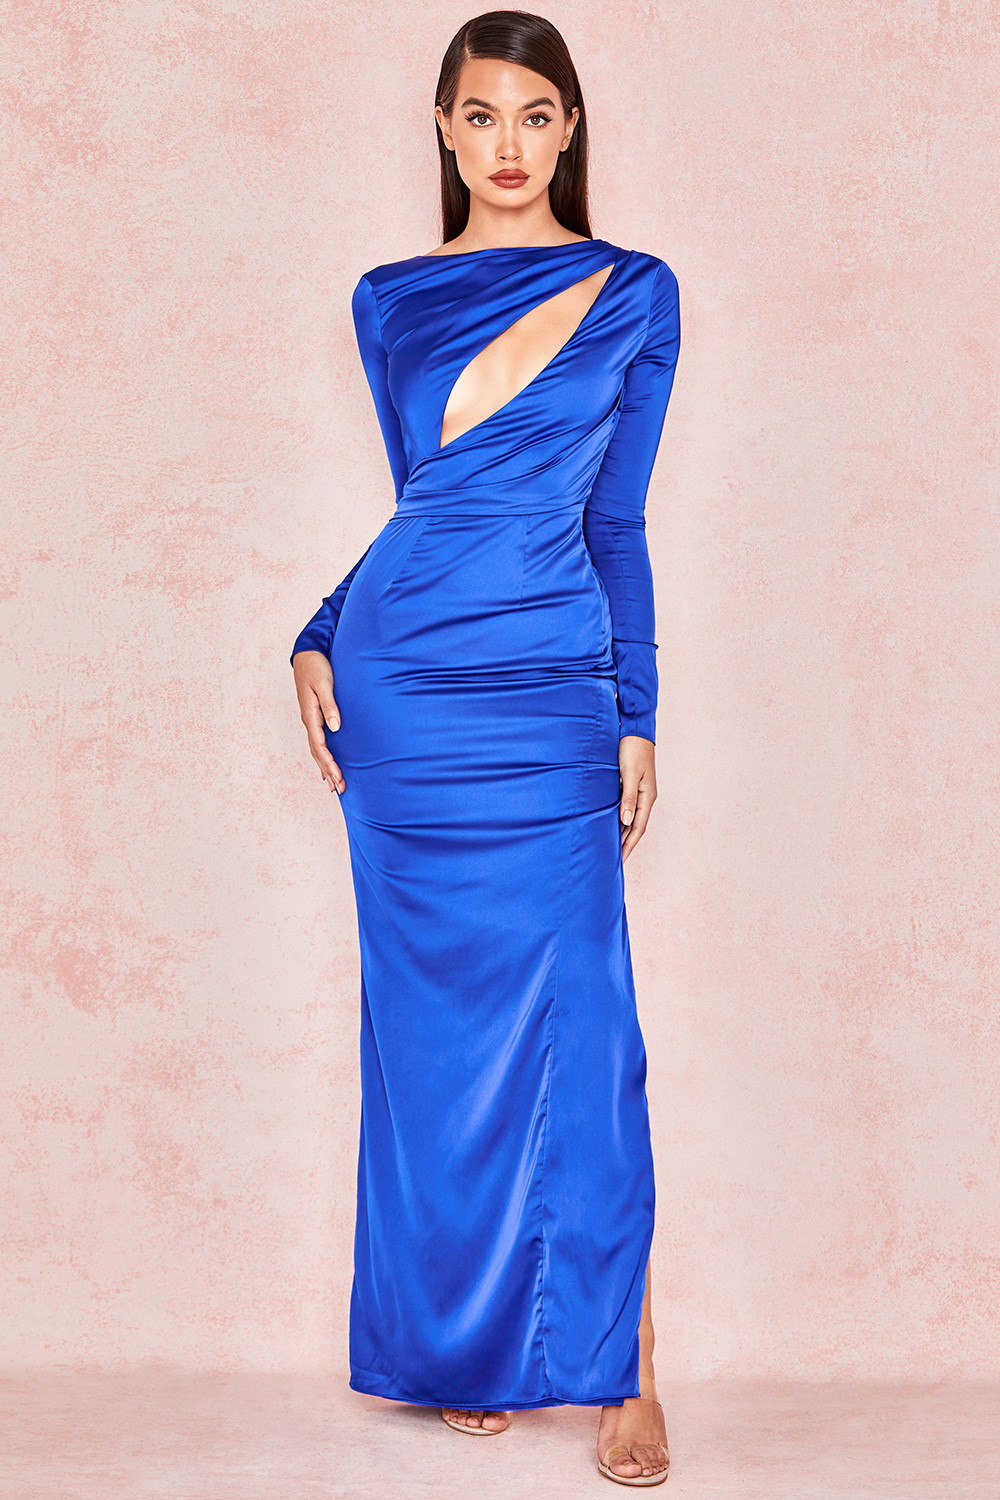 b66ce3bd721 Salome Electric Blue Satin Open Front Maxi Dress. View larger image. View  larger image